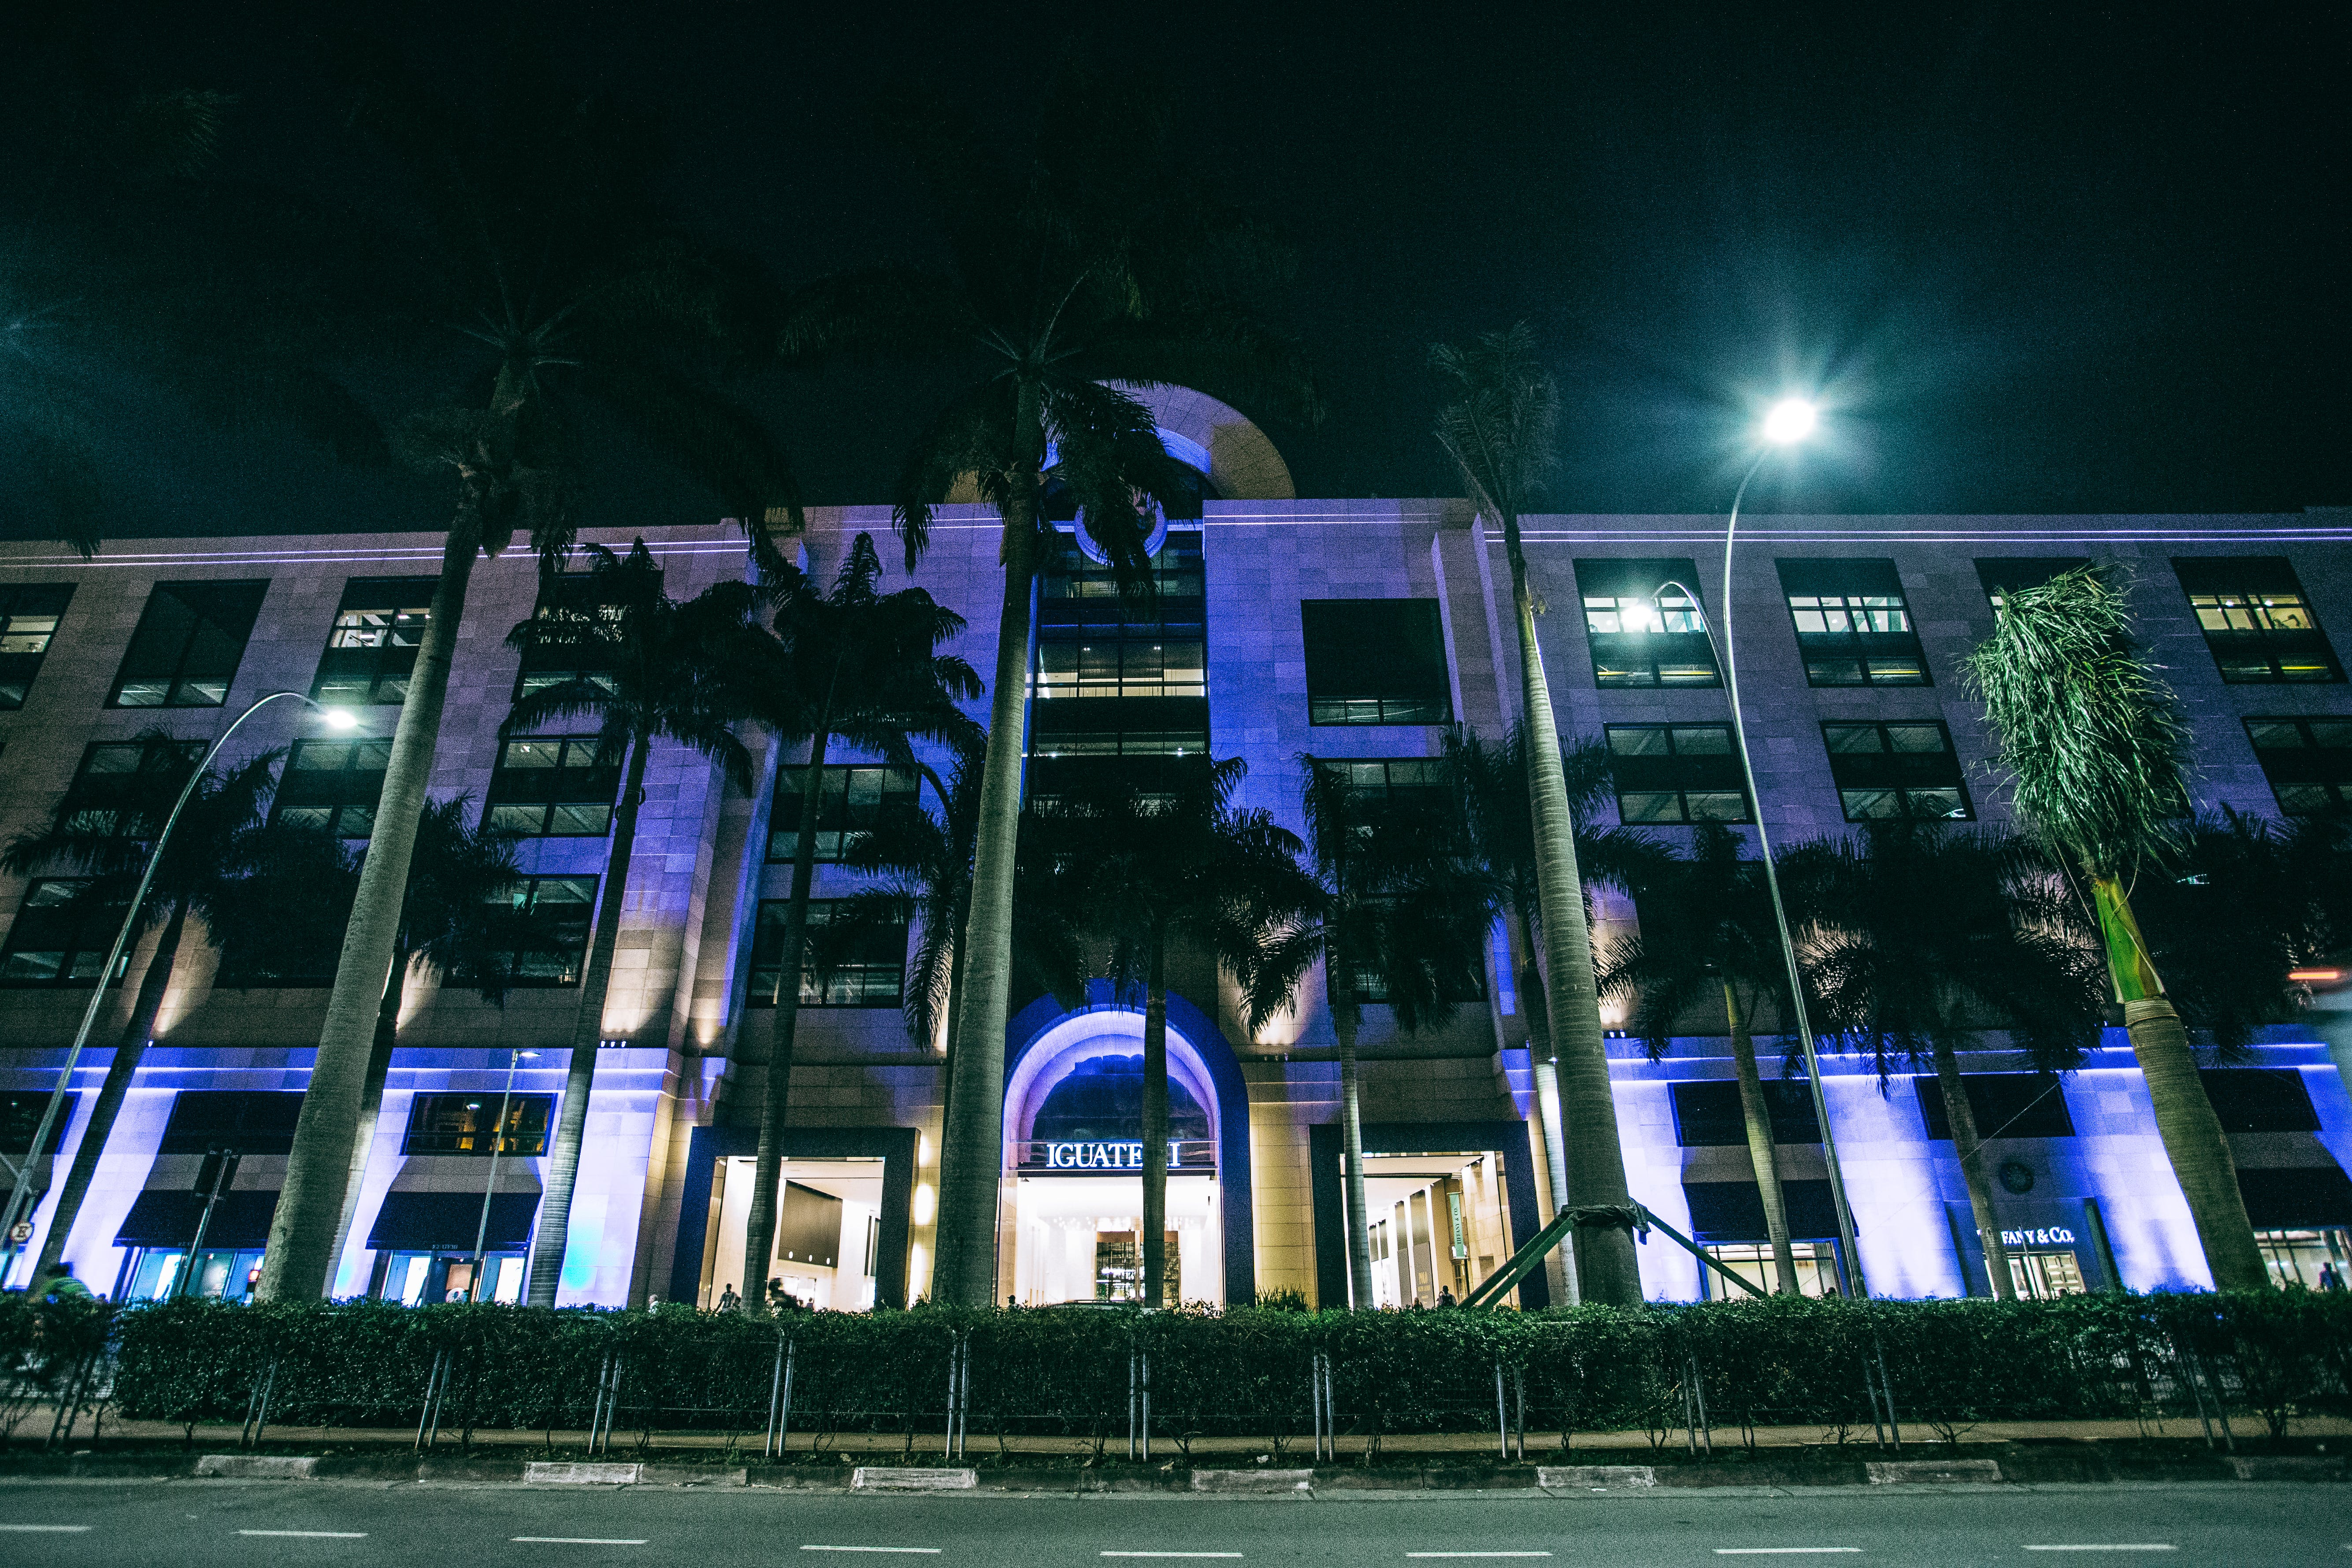 White Concrete Building Near Coconut Trees at Night